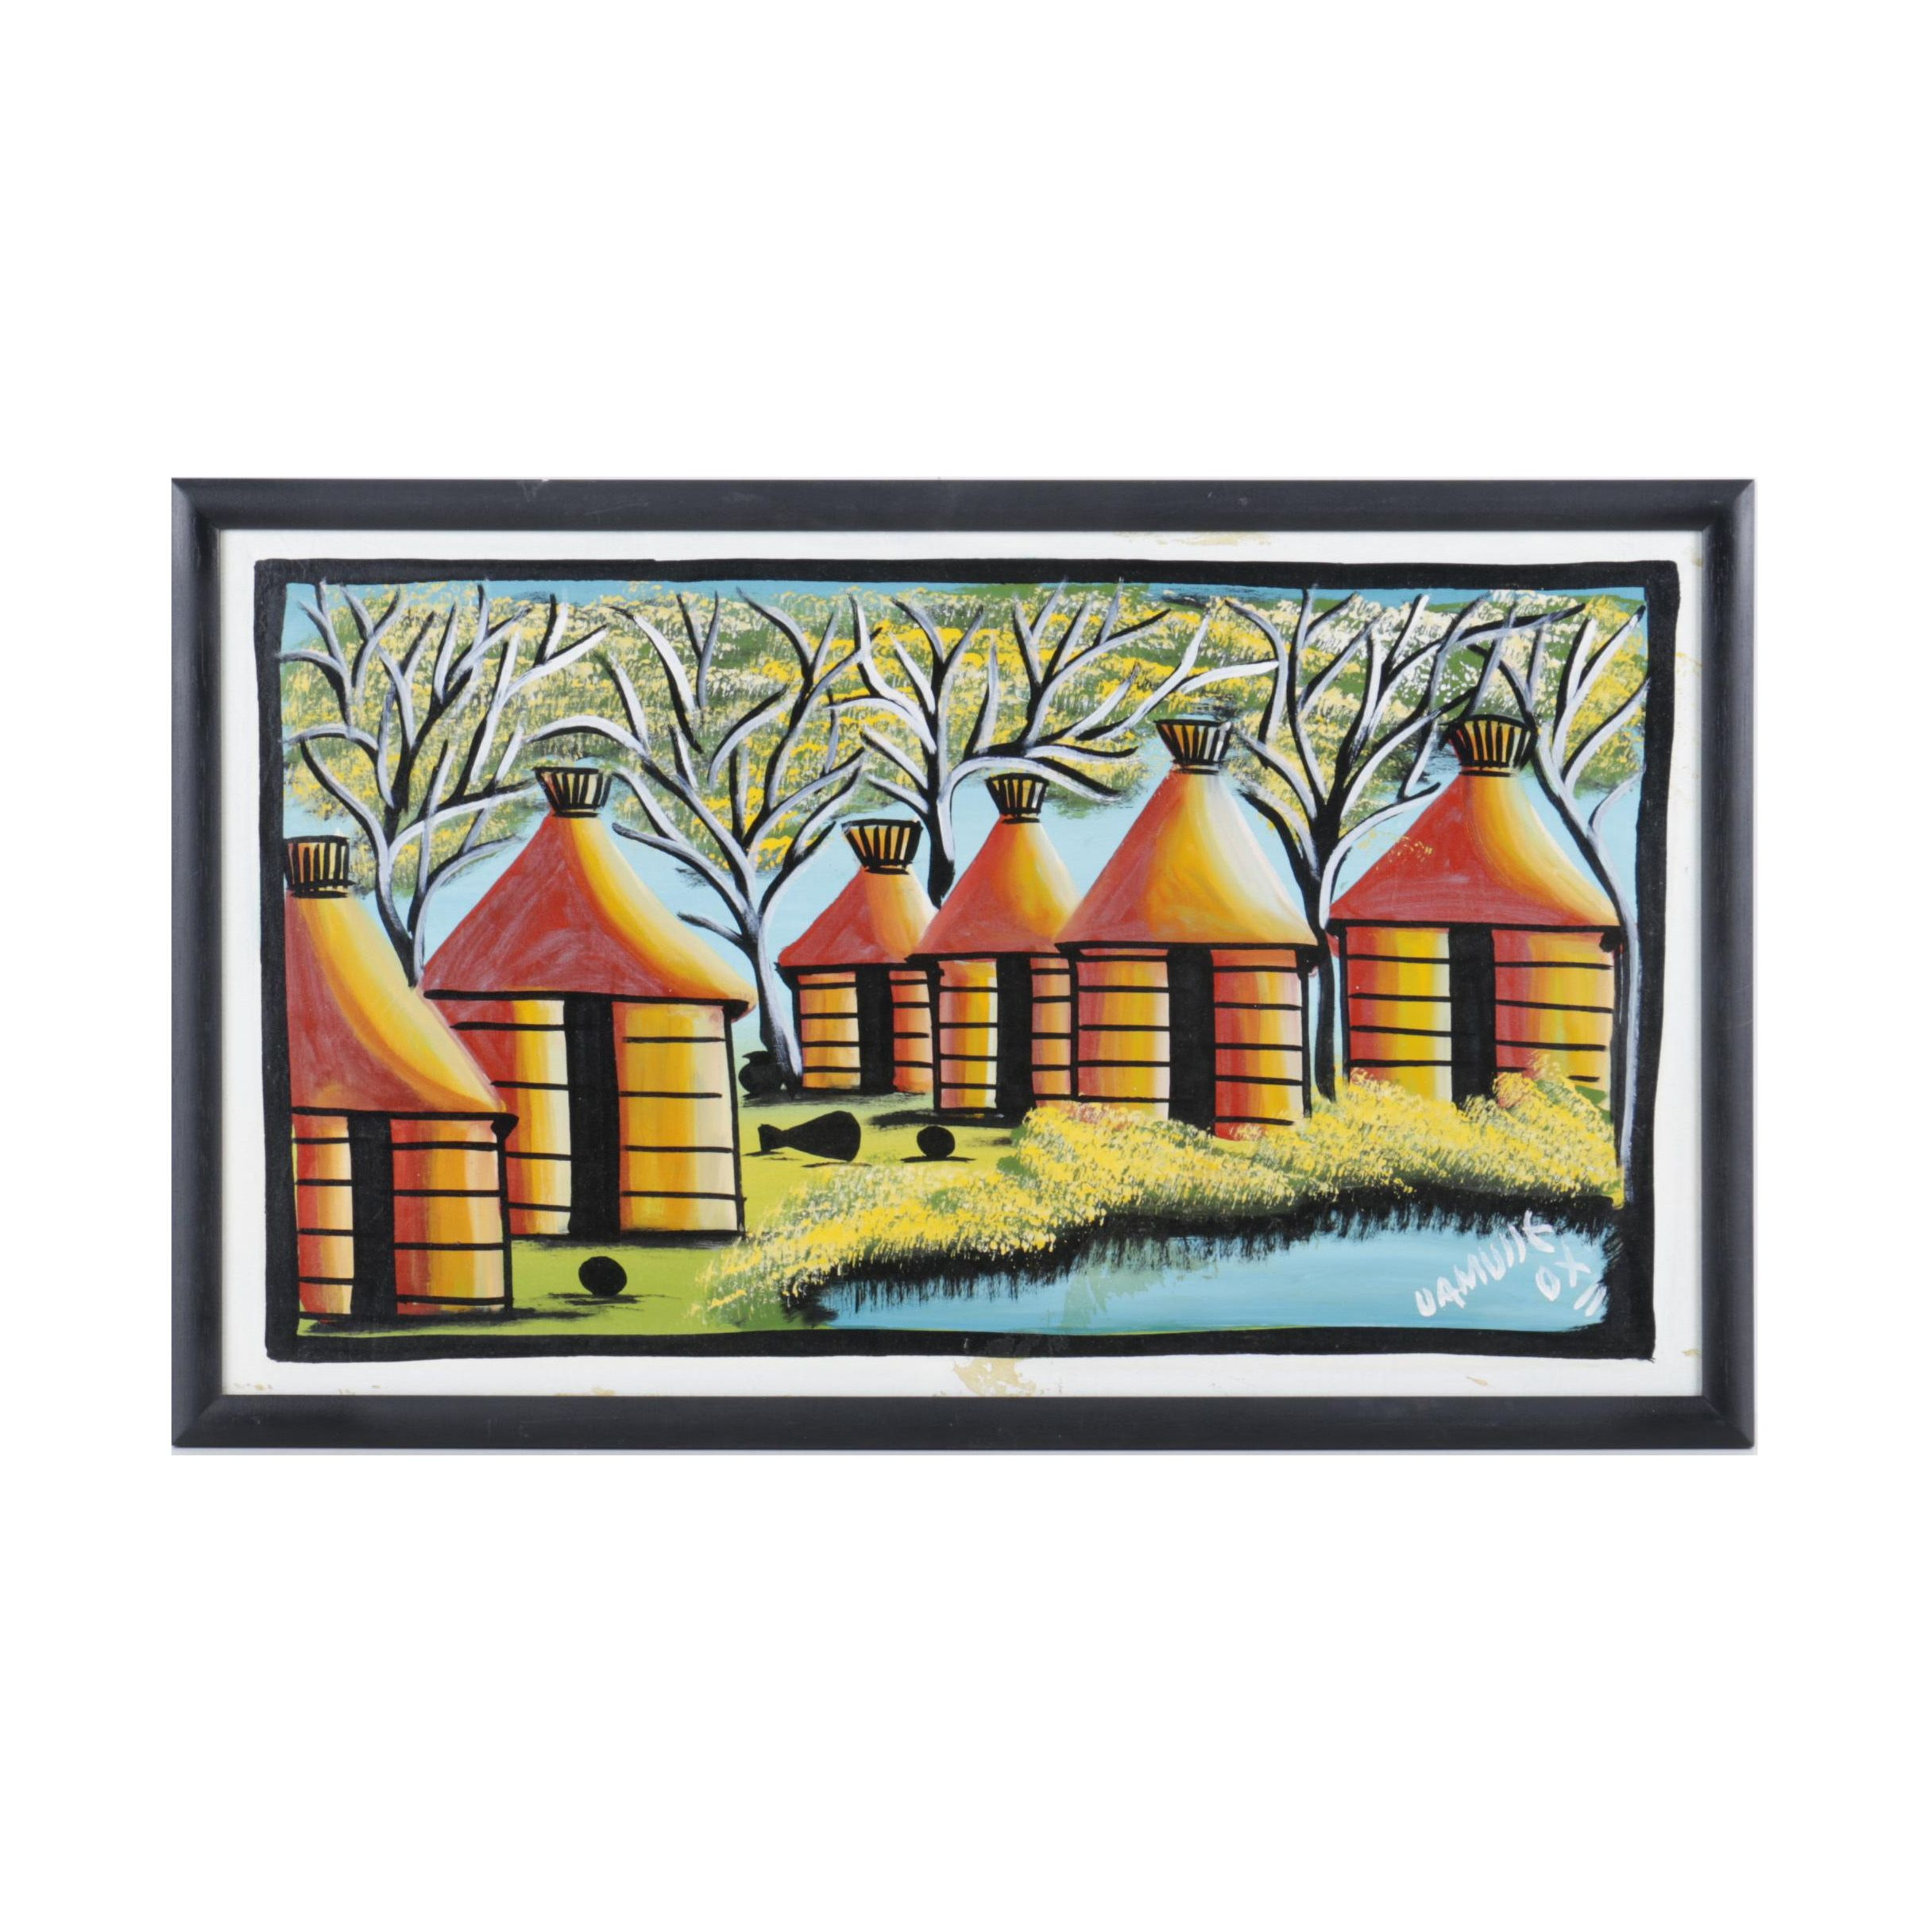 Acrylic Painting on Wood of a Native Village